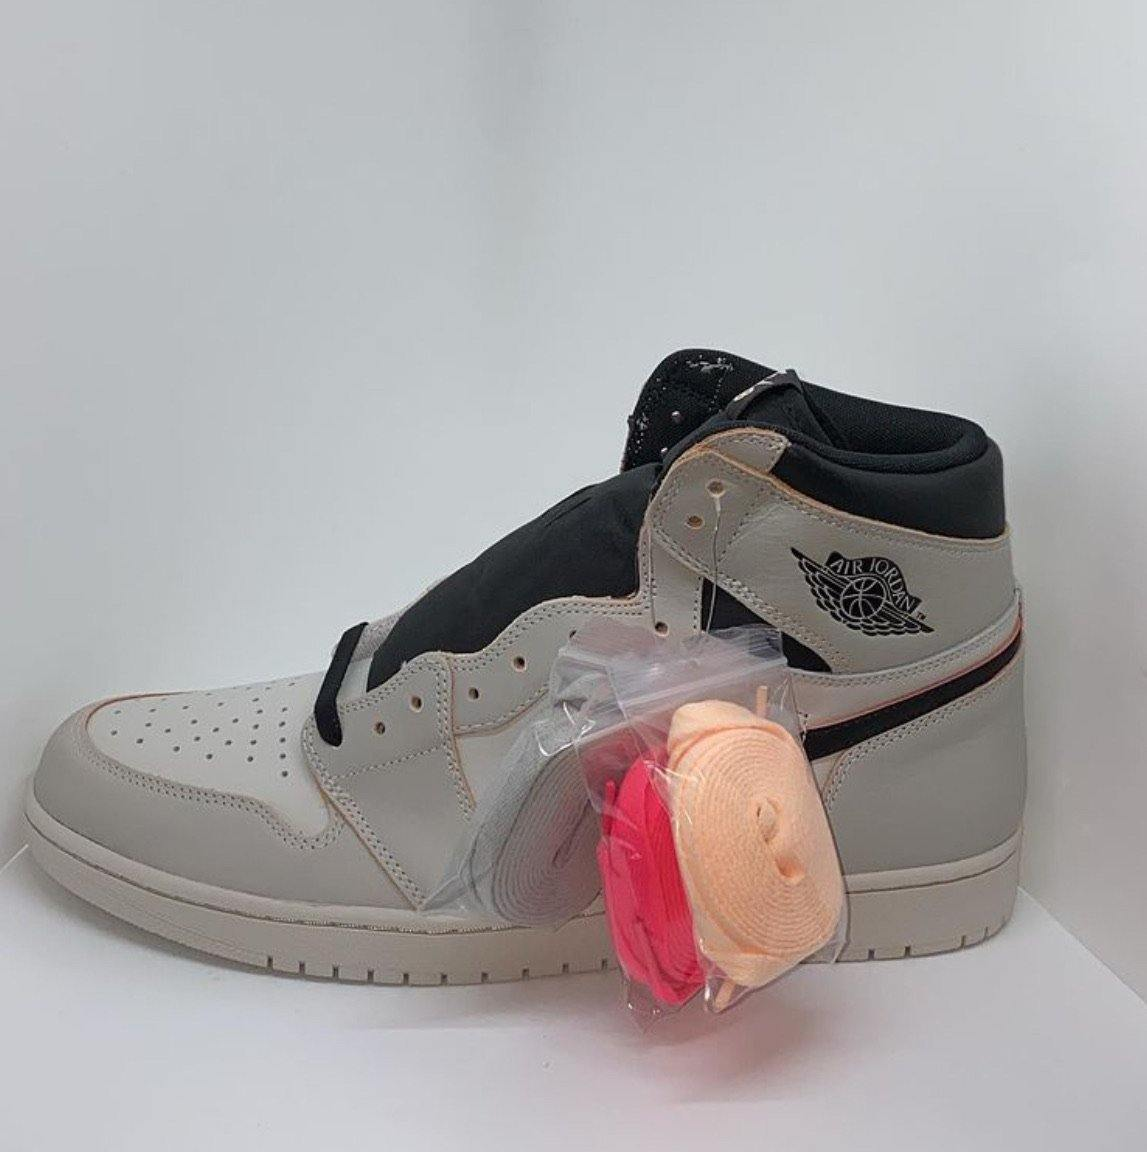 Air Jordan Retro 1s - Exclusive Shoes